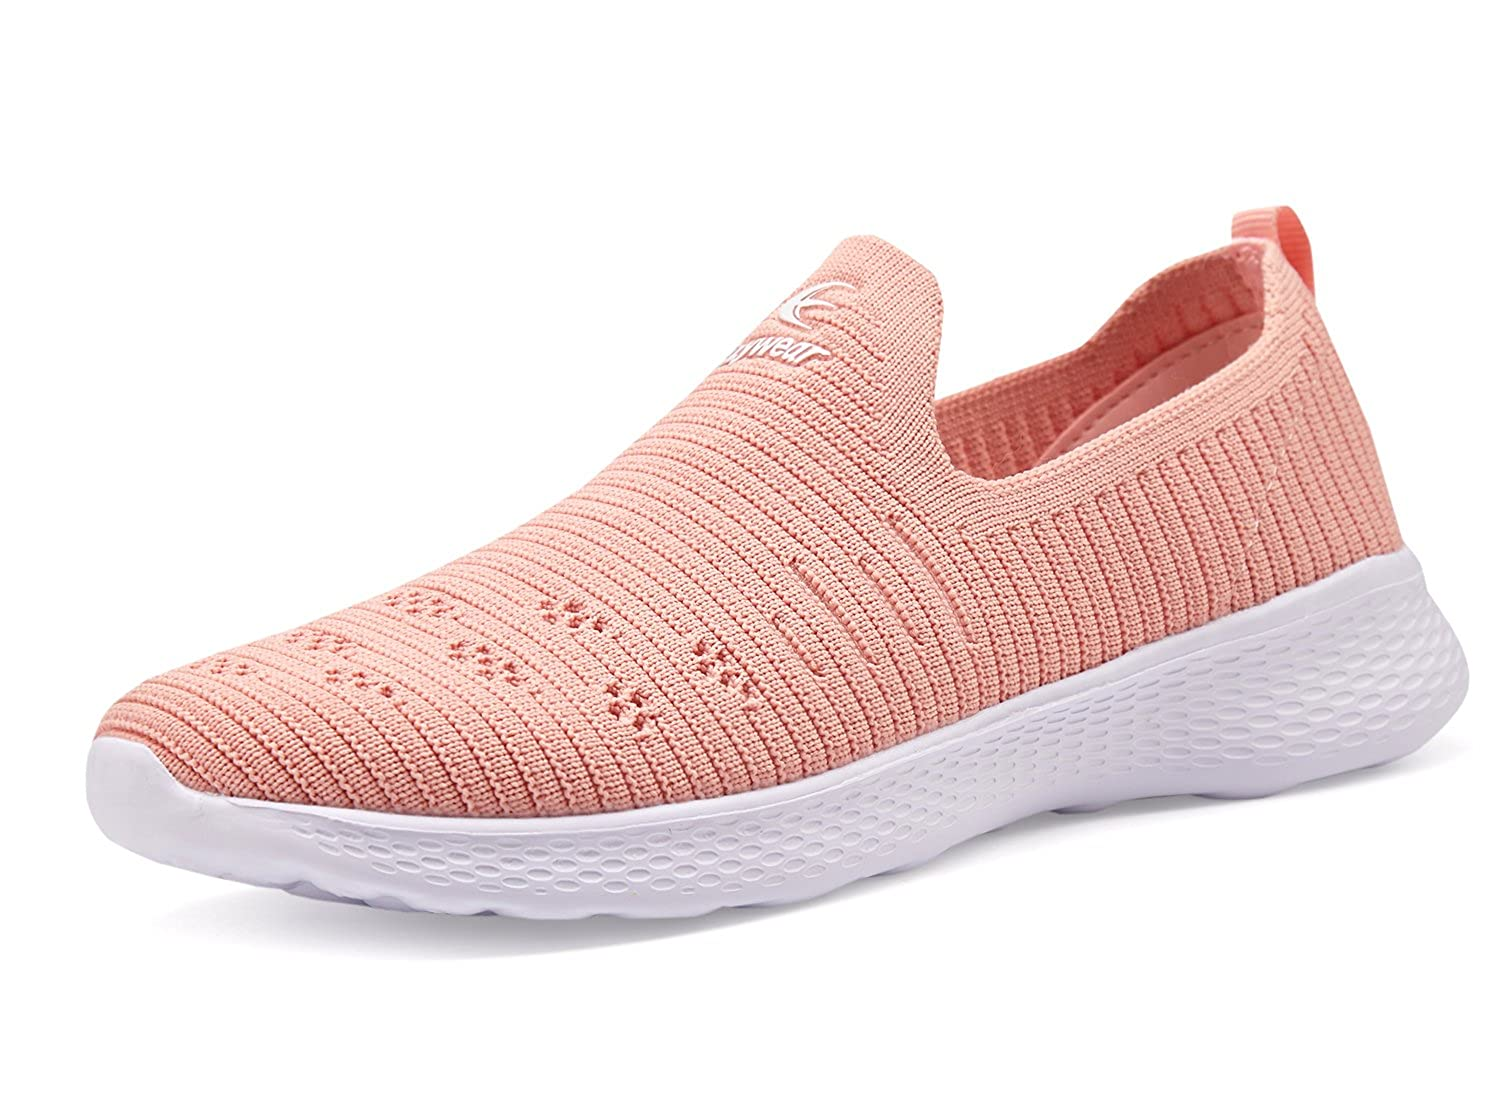 Ezywear Womens Slip on Shoes EZ83834 Light Weight Breathable Sneakers for Walking,Road Running Shoes